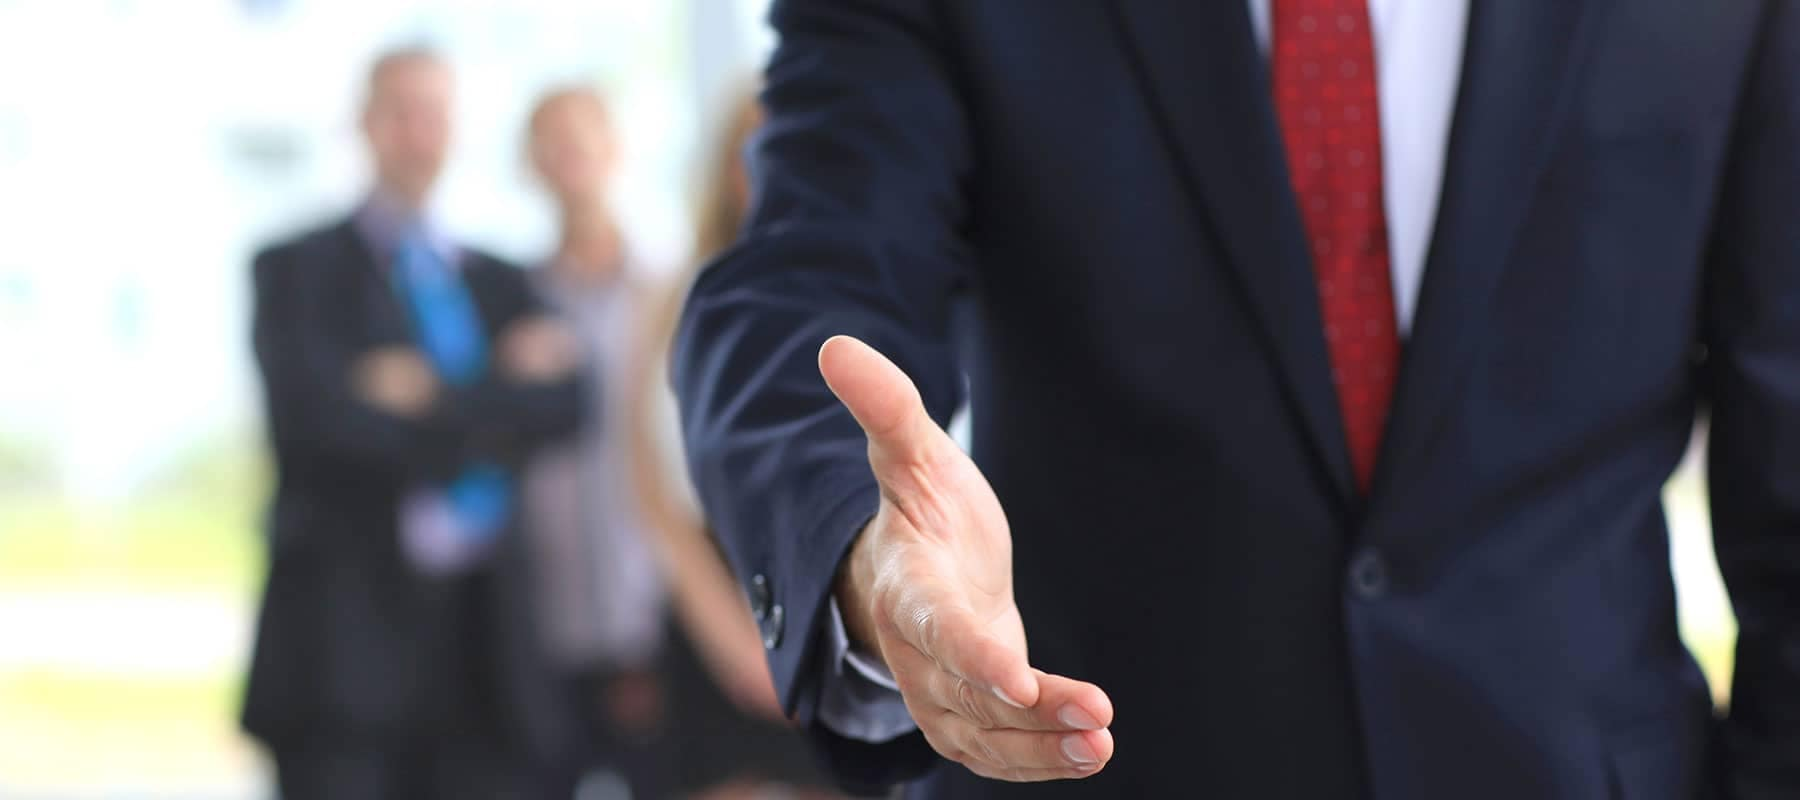 man in suit reaches out to shake hand